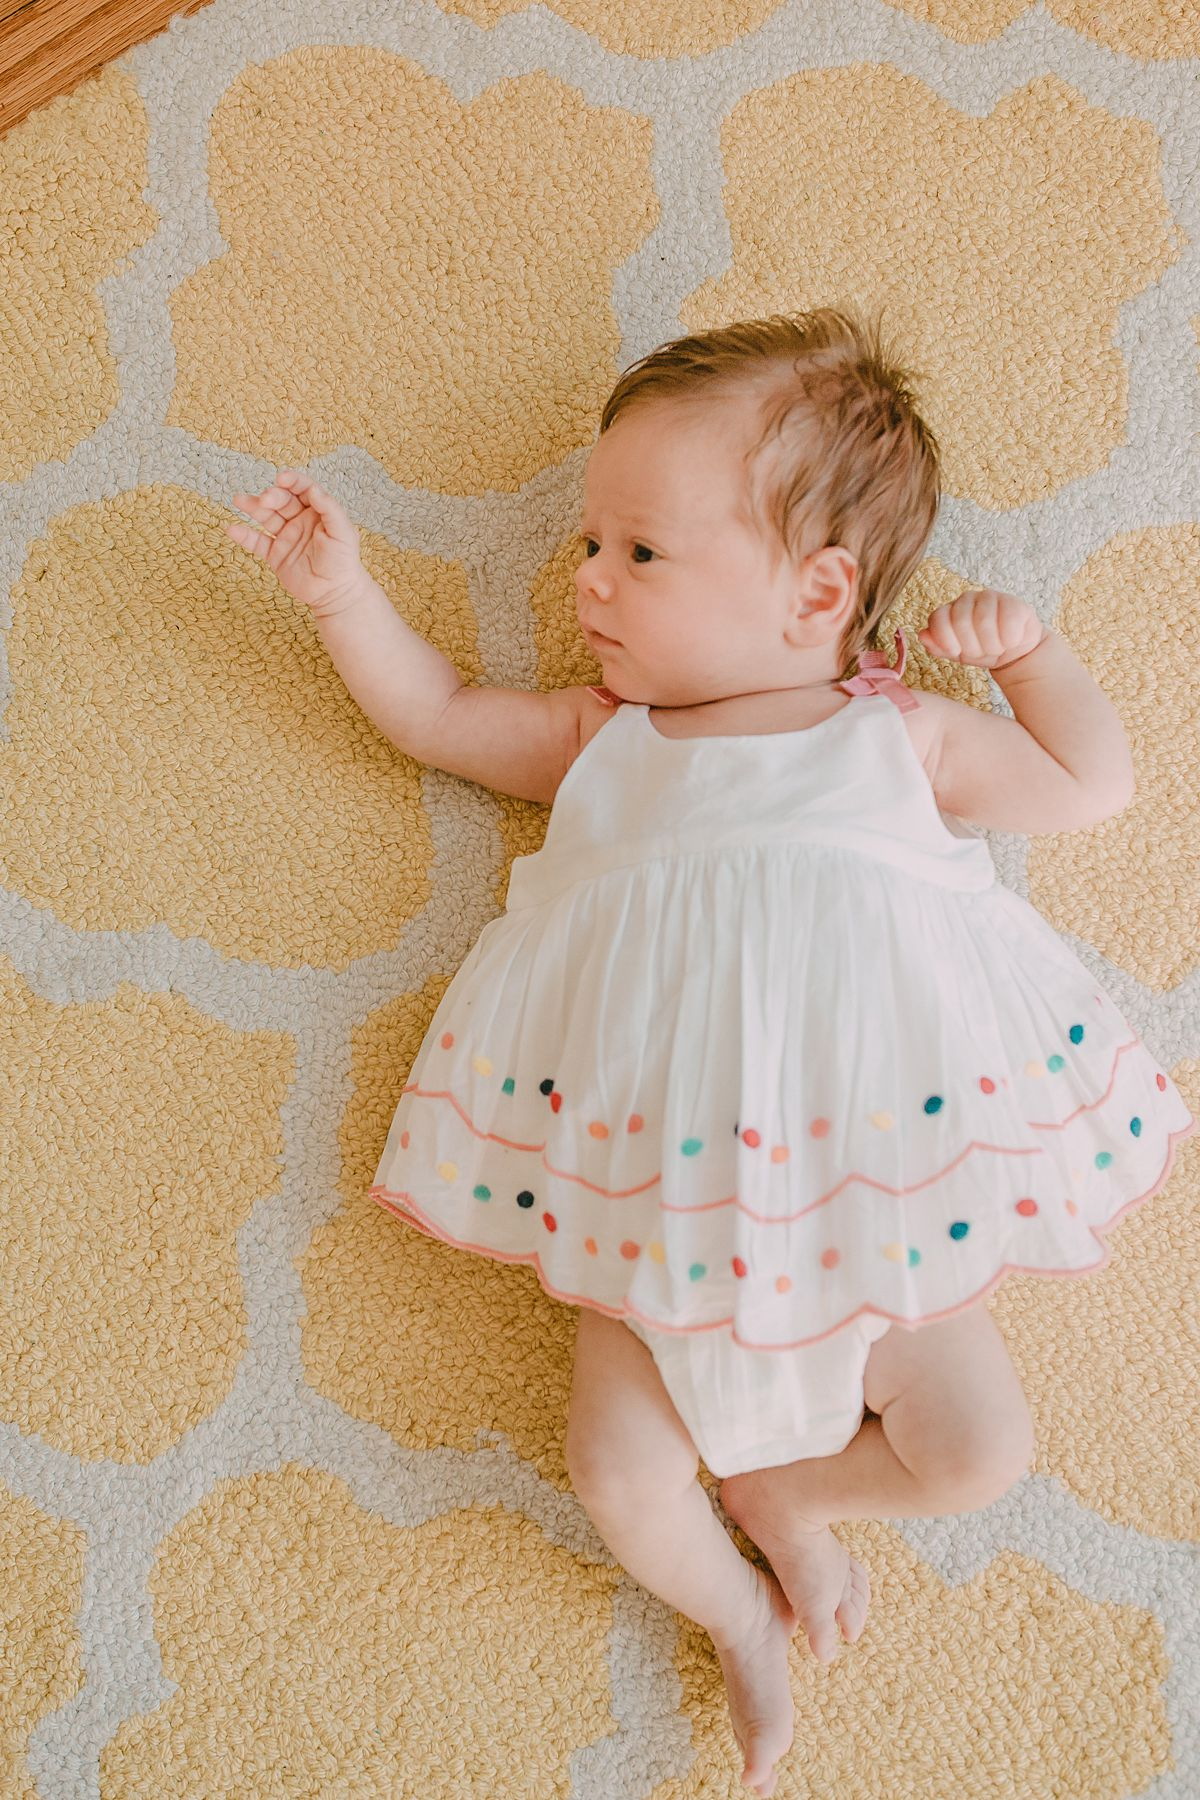 close up of newborn baby girl lying on yellow and white rug in beautiful white and polka dot dress